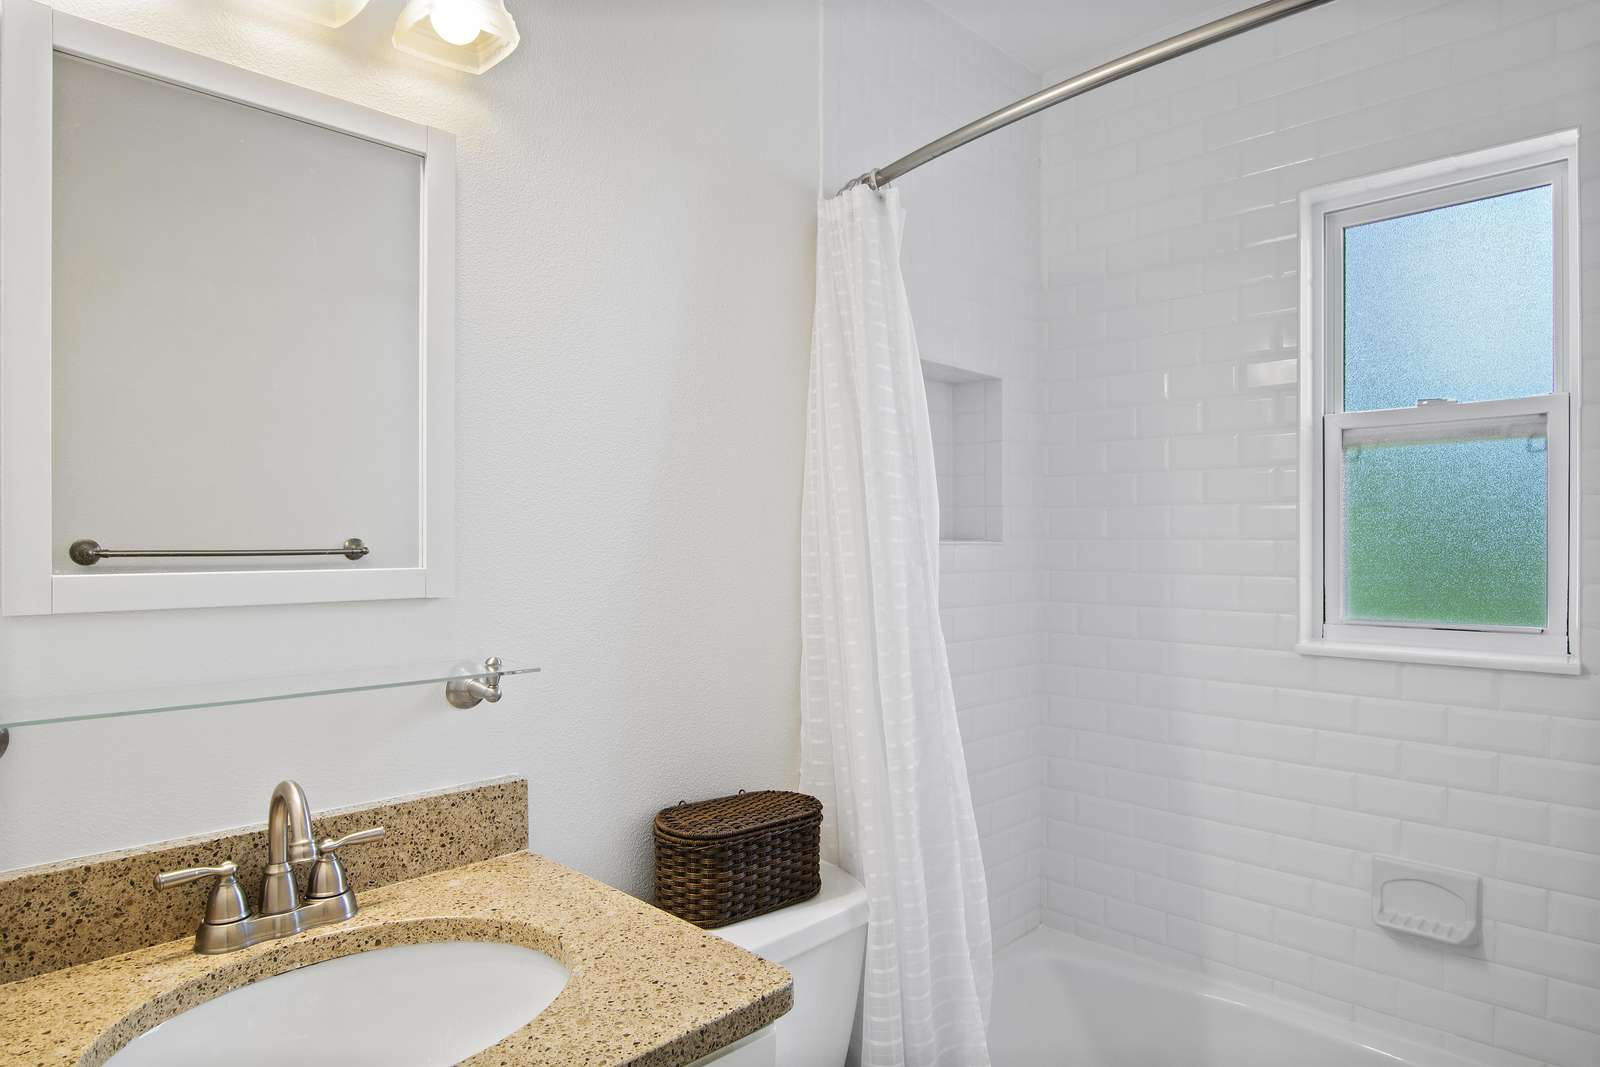 Bathroom with tub / shower combination